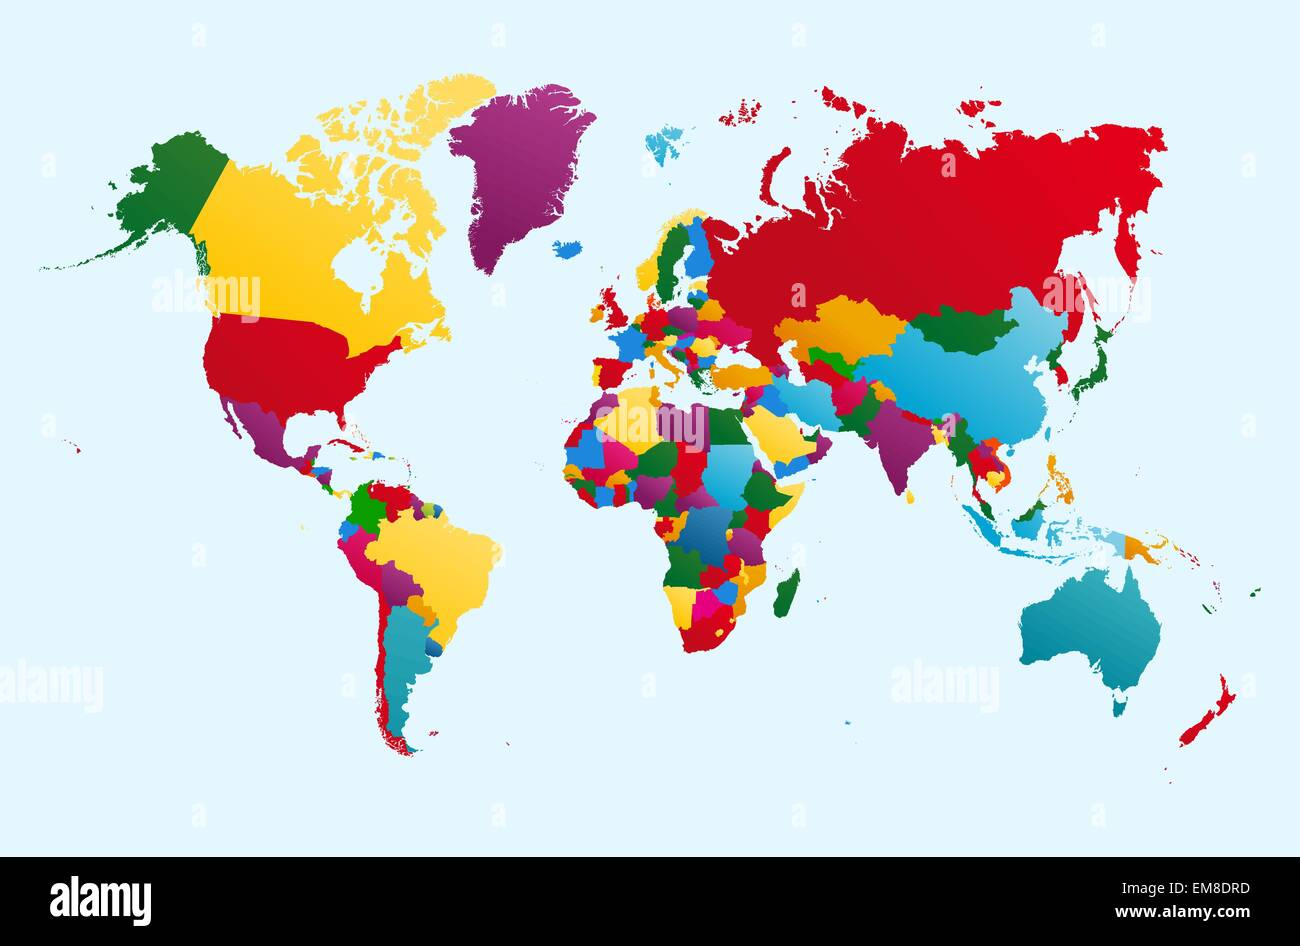 World map, colorful countries illustration EPS10 vector file. - Stock Image